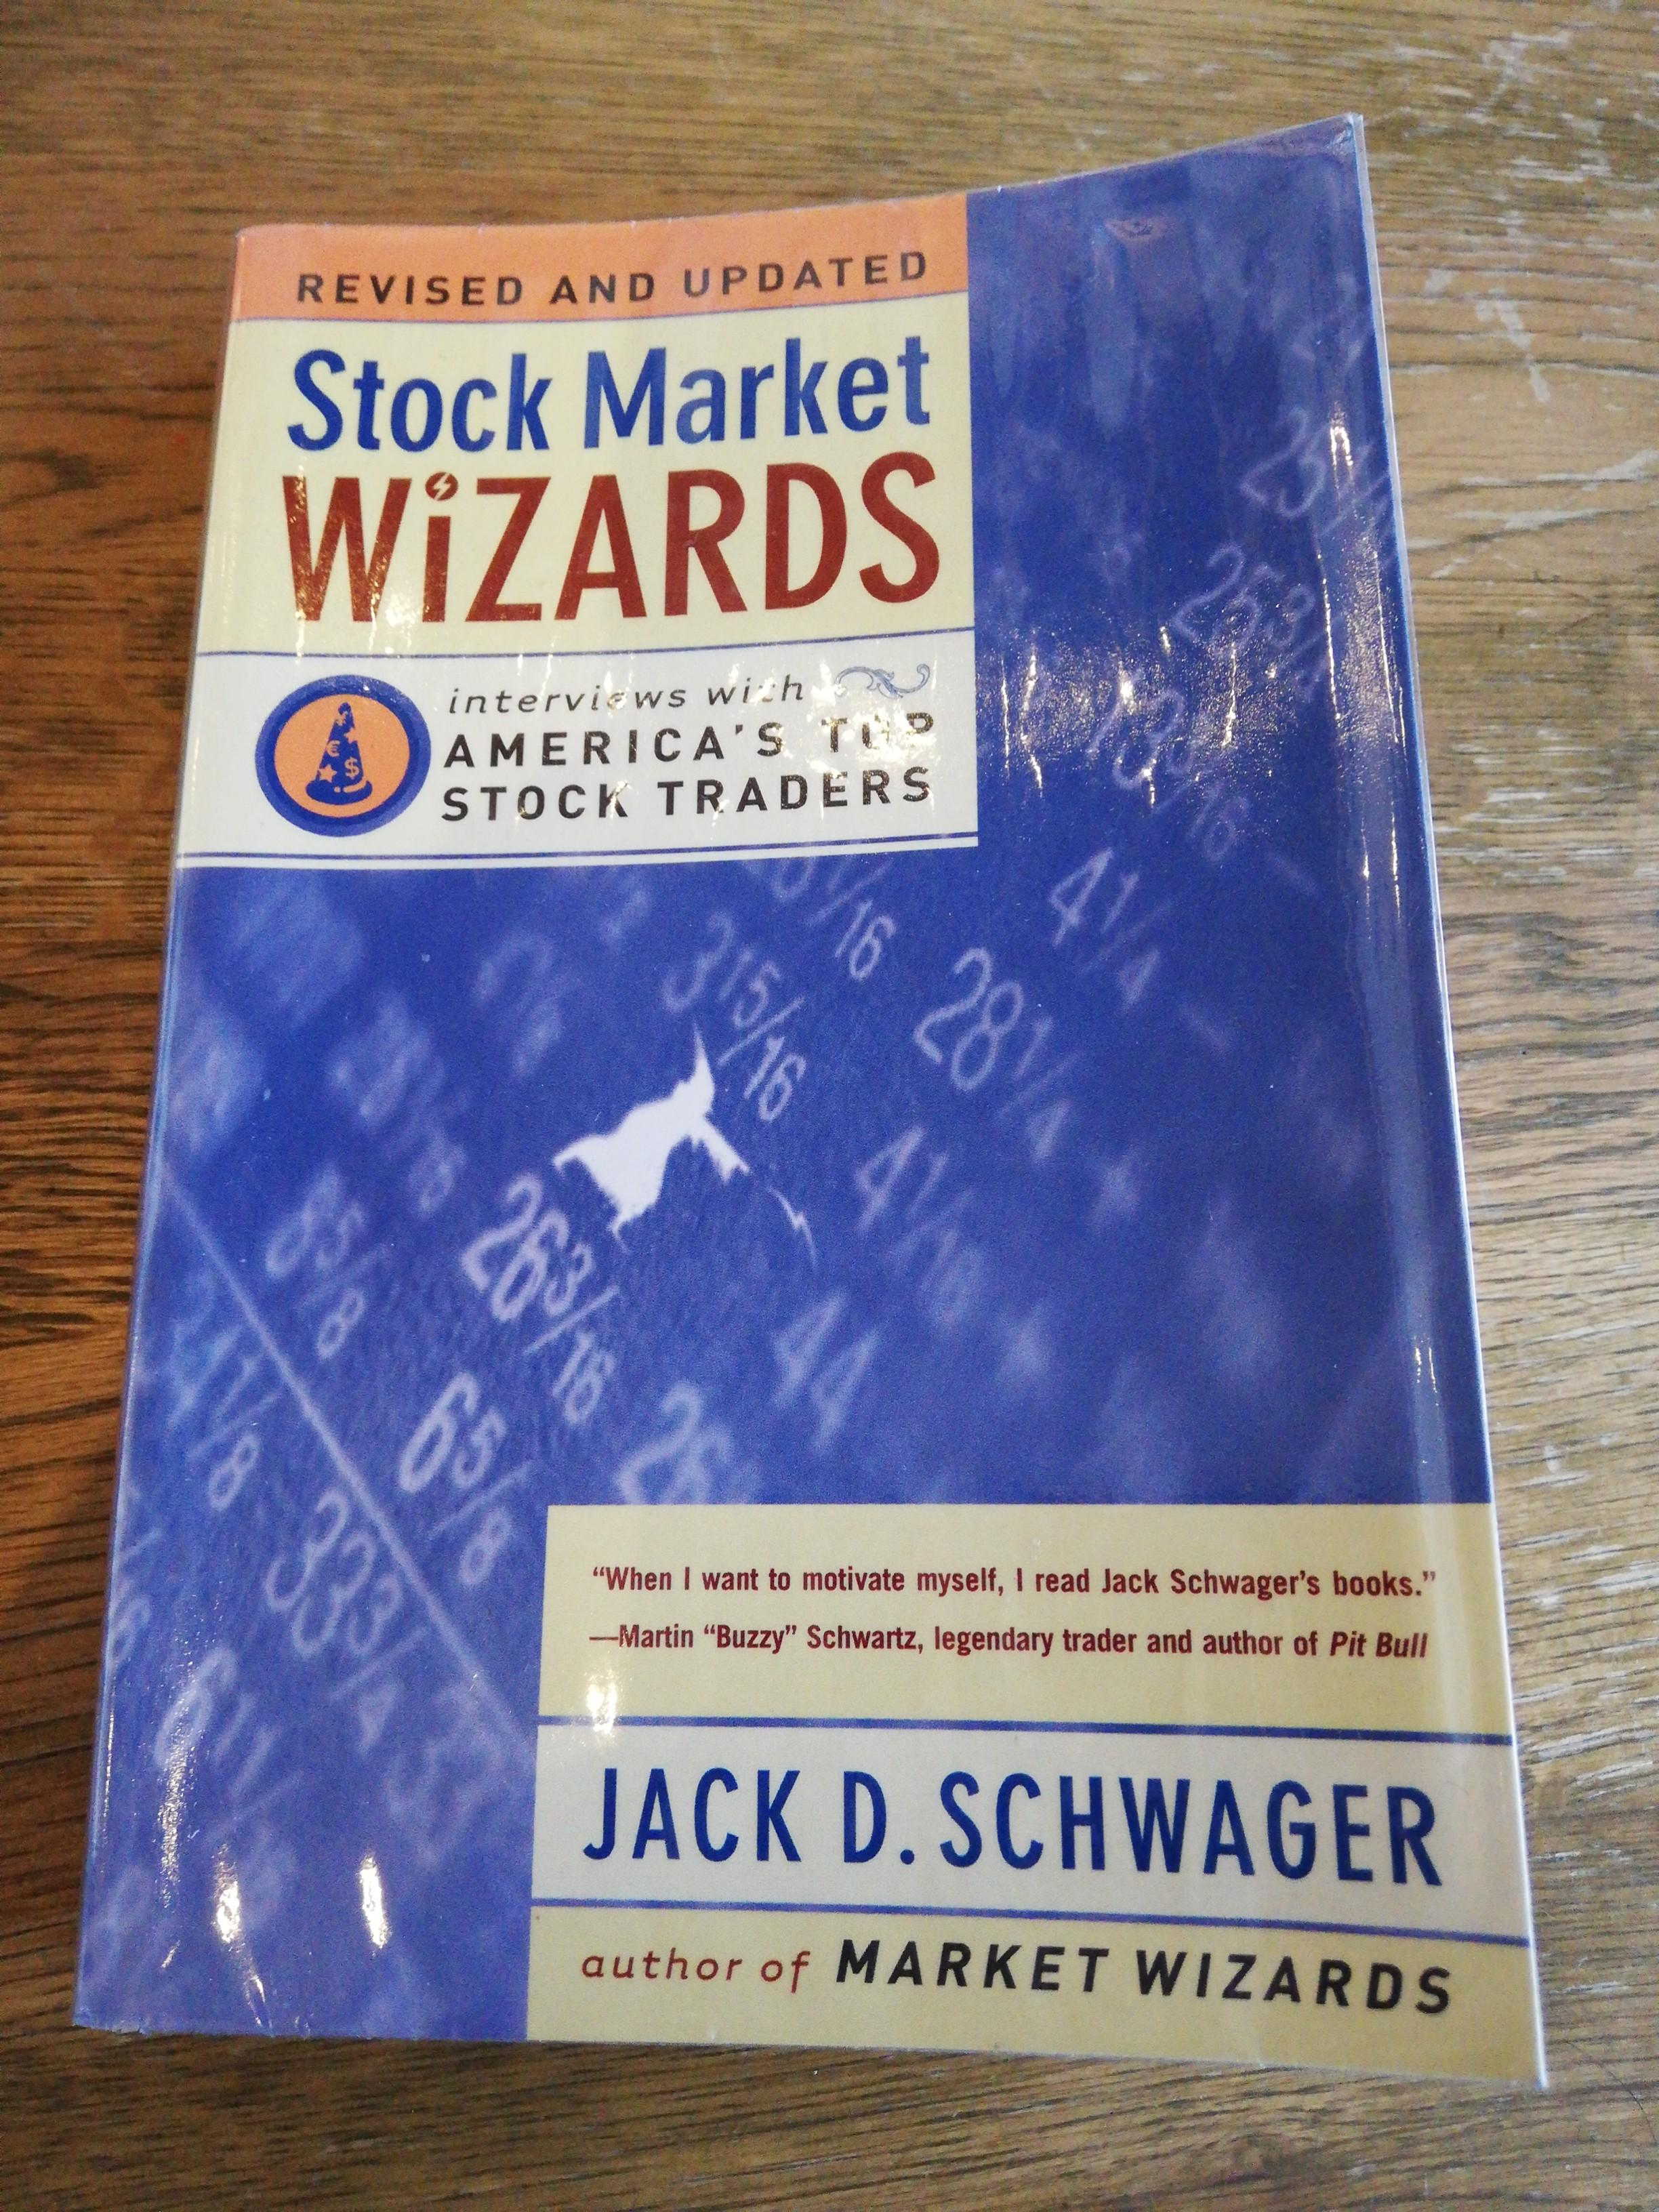 Revised and Updated Stock Market Wizards (Interviews with America's Top Stock Traders) by Jack Schwager